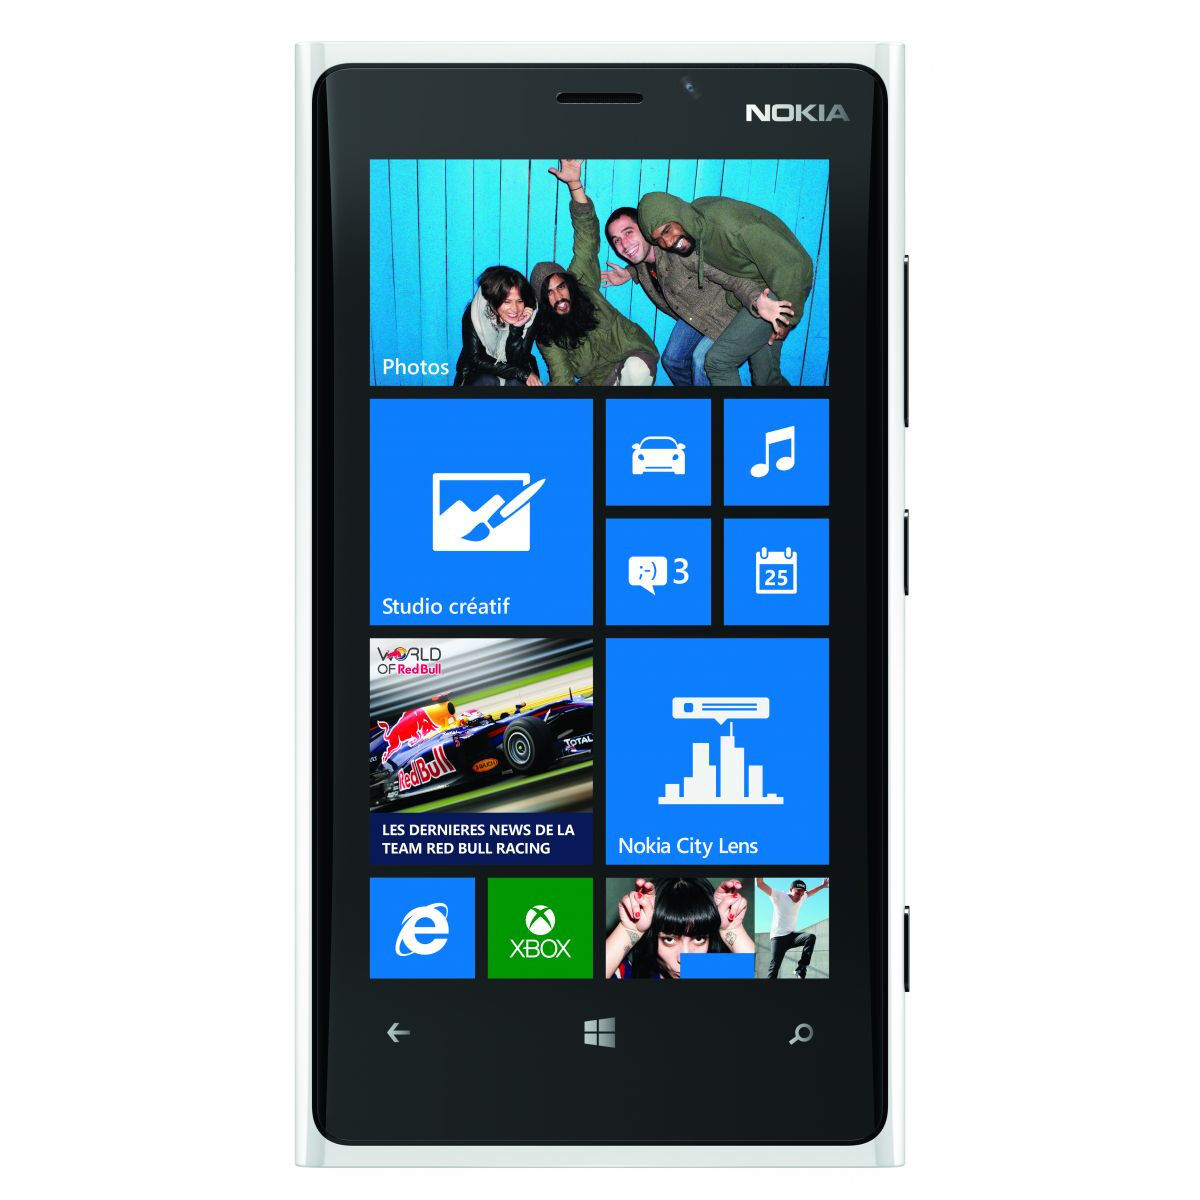 new nokia lumia 920 32gb unlocked gsm windows 8 cell phone. Black Bedroom Furniture Sets. Home Design Ideas